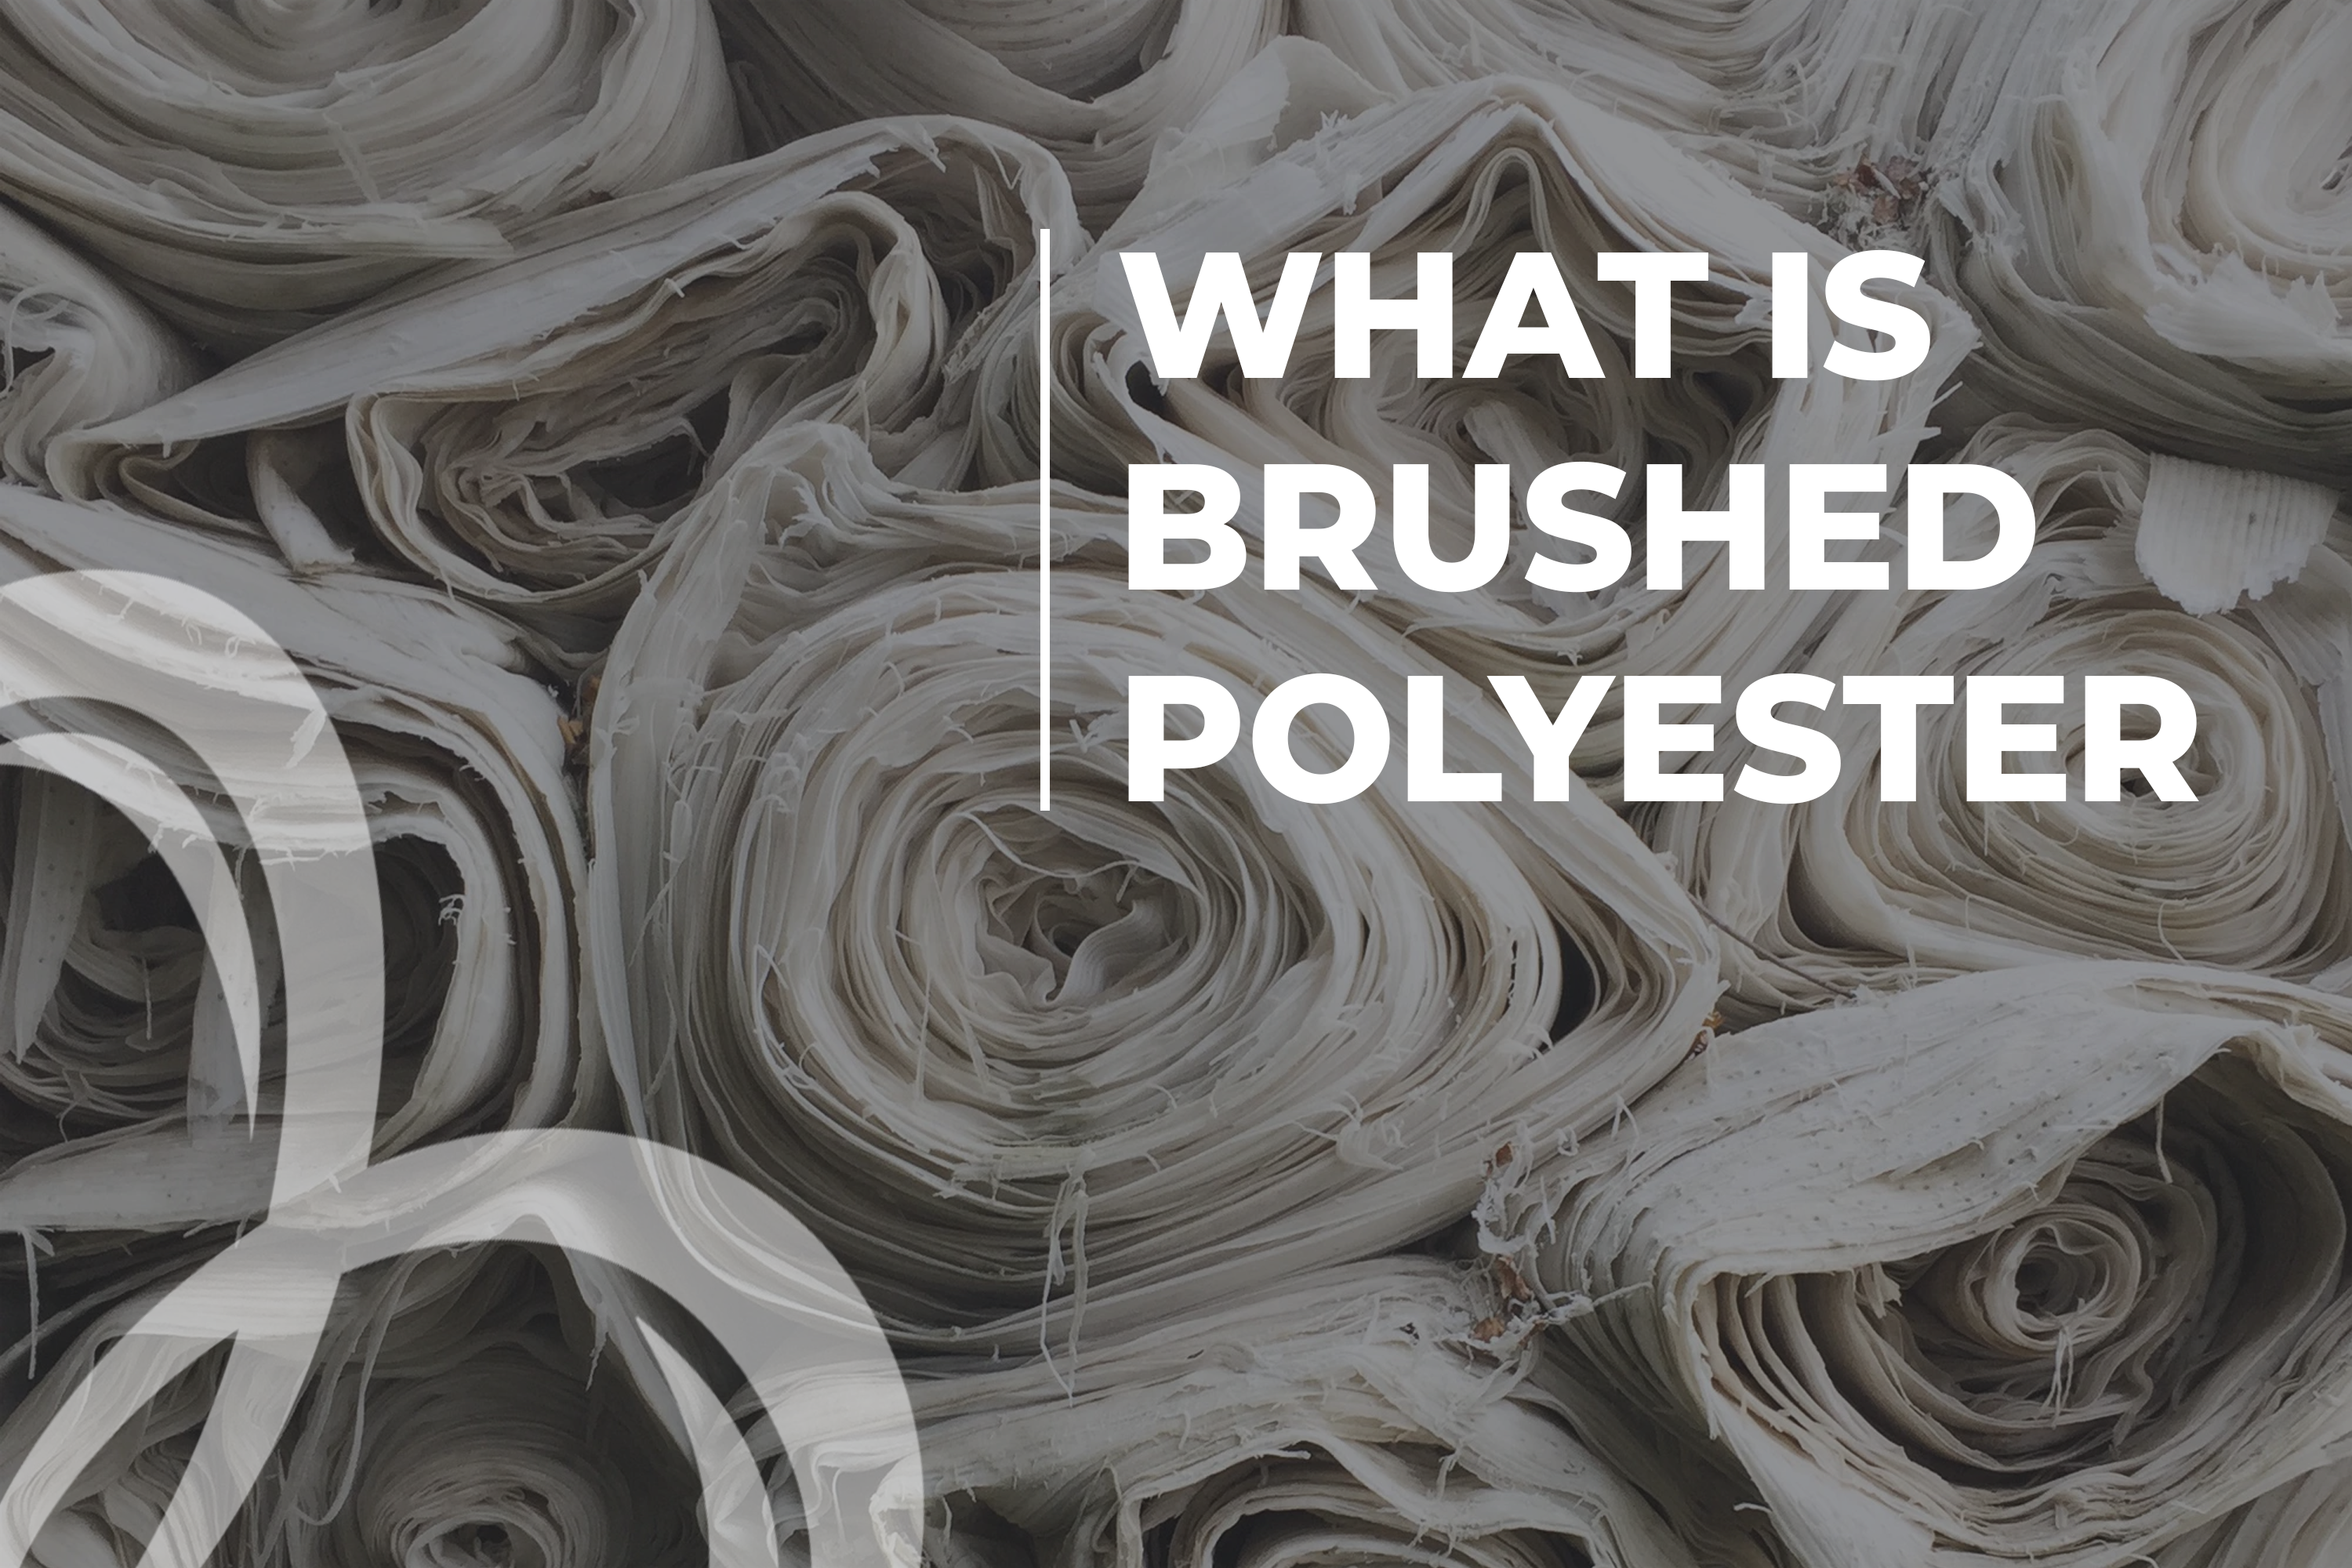 What Is Brushed Polyester